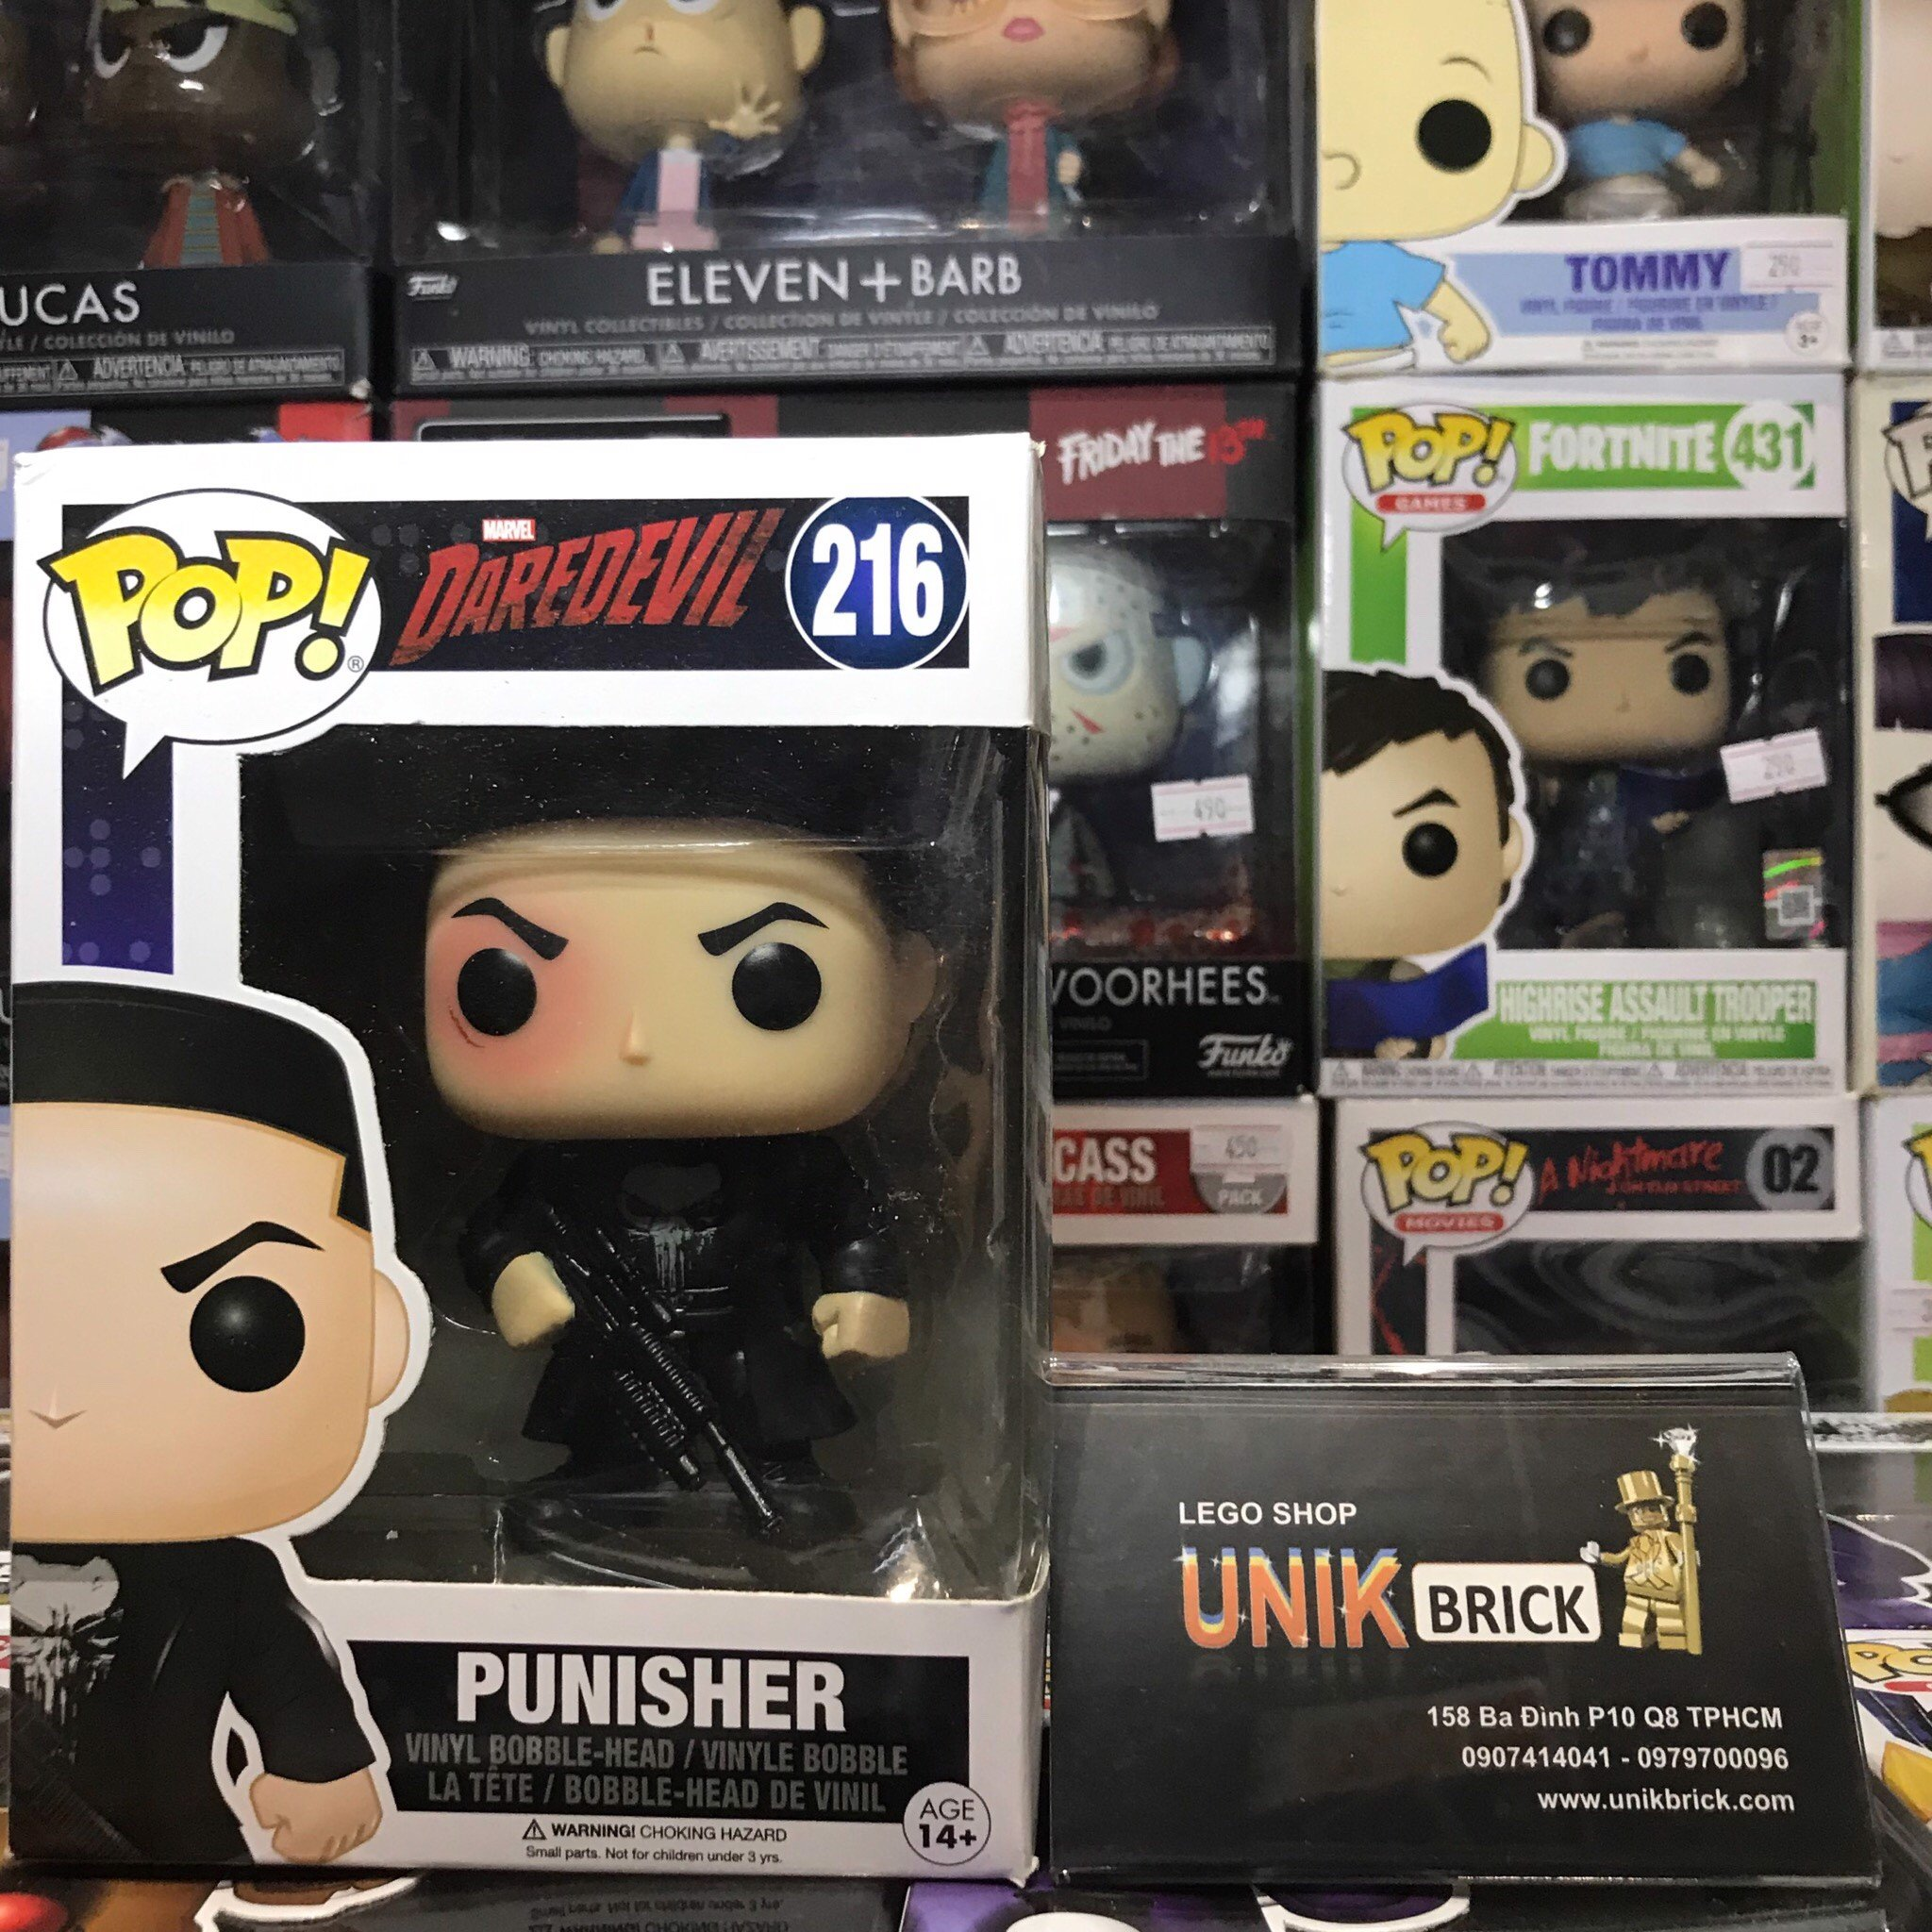 FUNKO POP Daredevil 216 Punisher